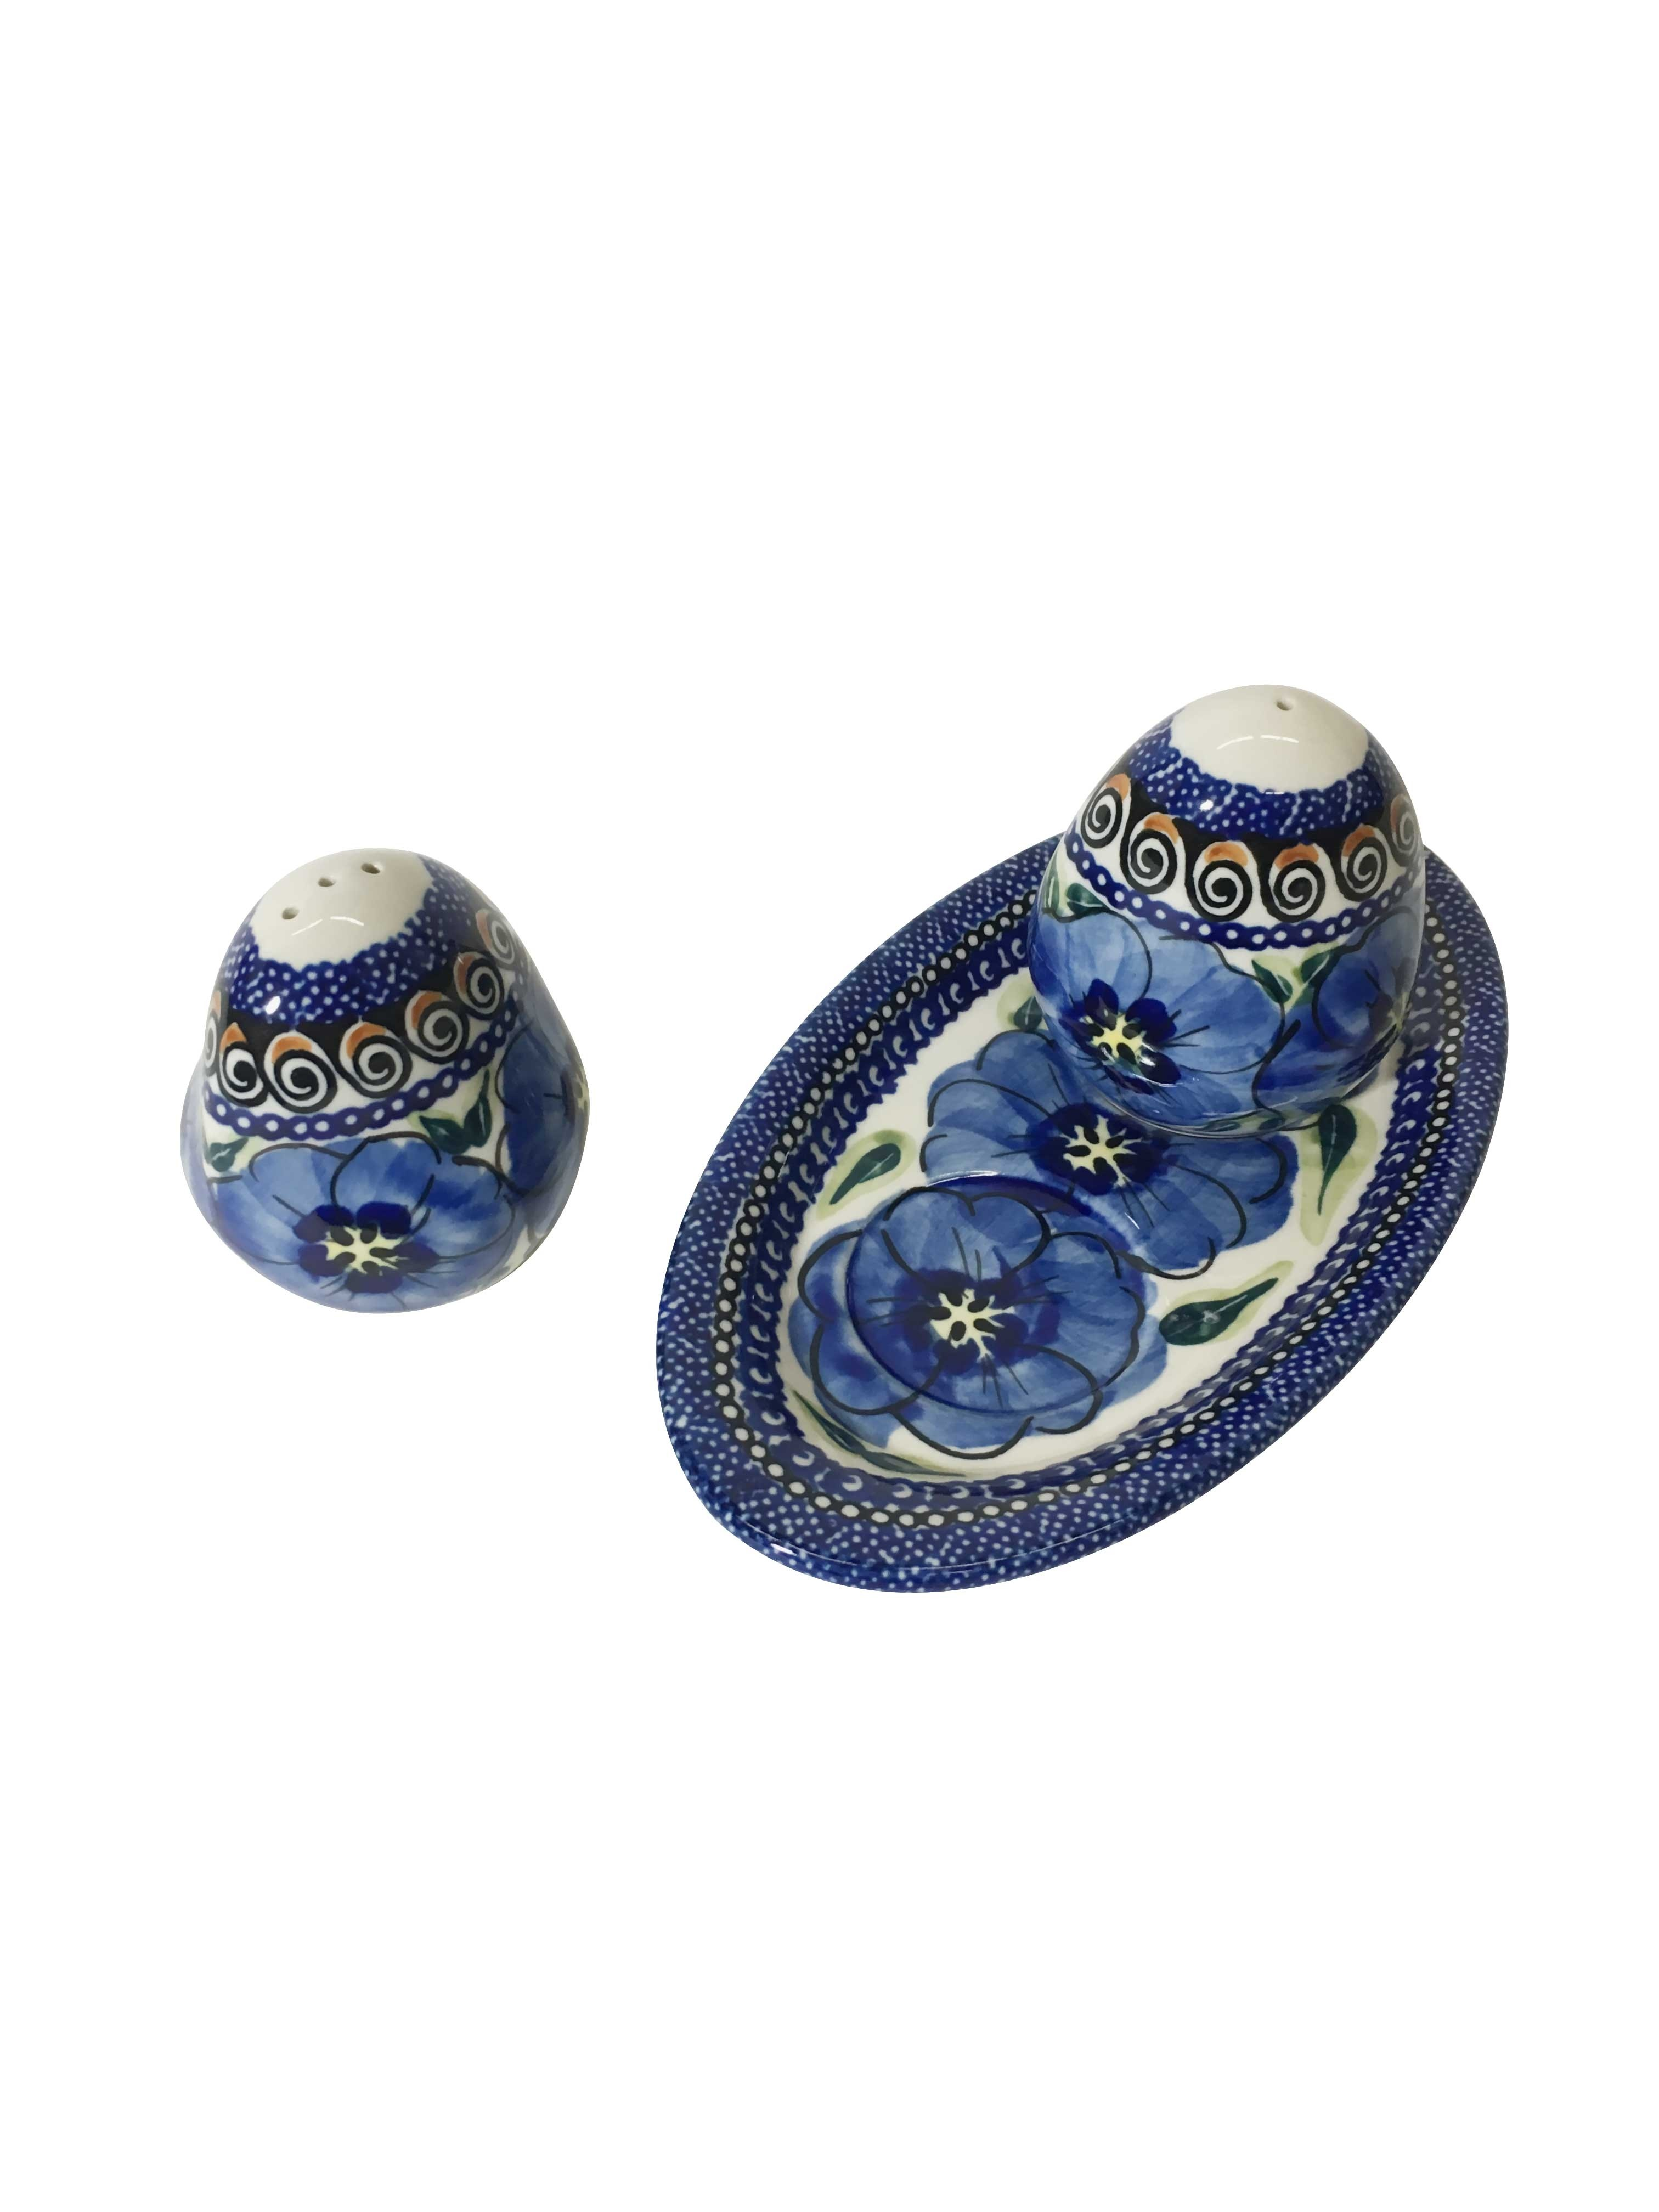 Pottery Avenue Blue Pansy 3pc Stoneware Salt and Pepper Trio Set - 962-961-148AR